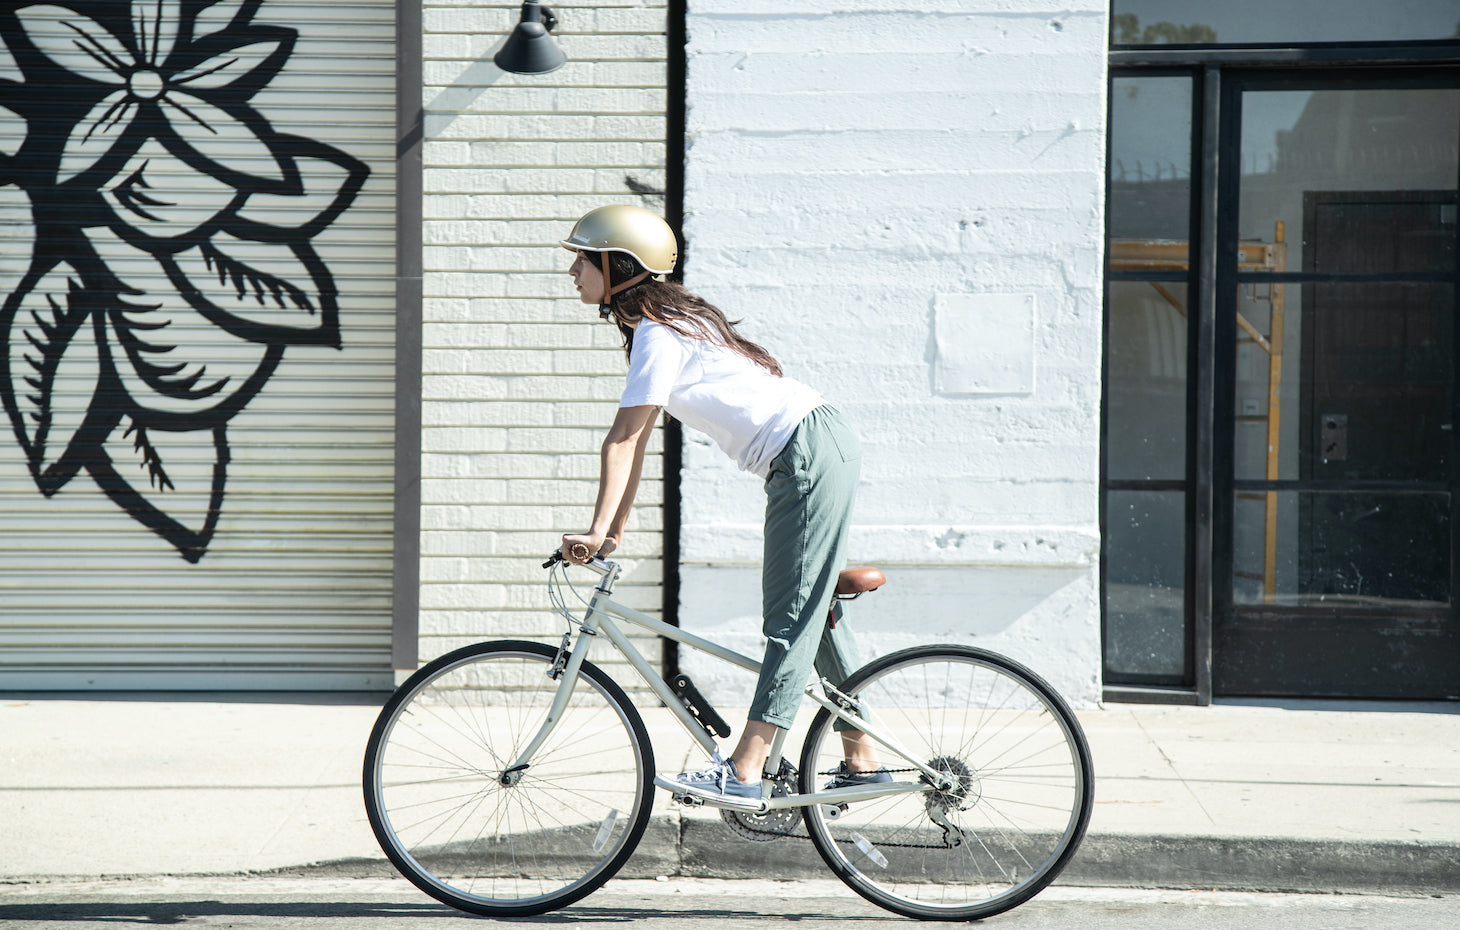 SHOULD YOU WEAR A BIKE HELMET?